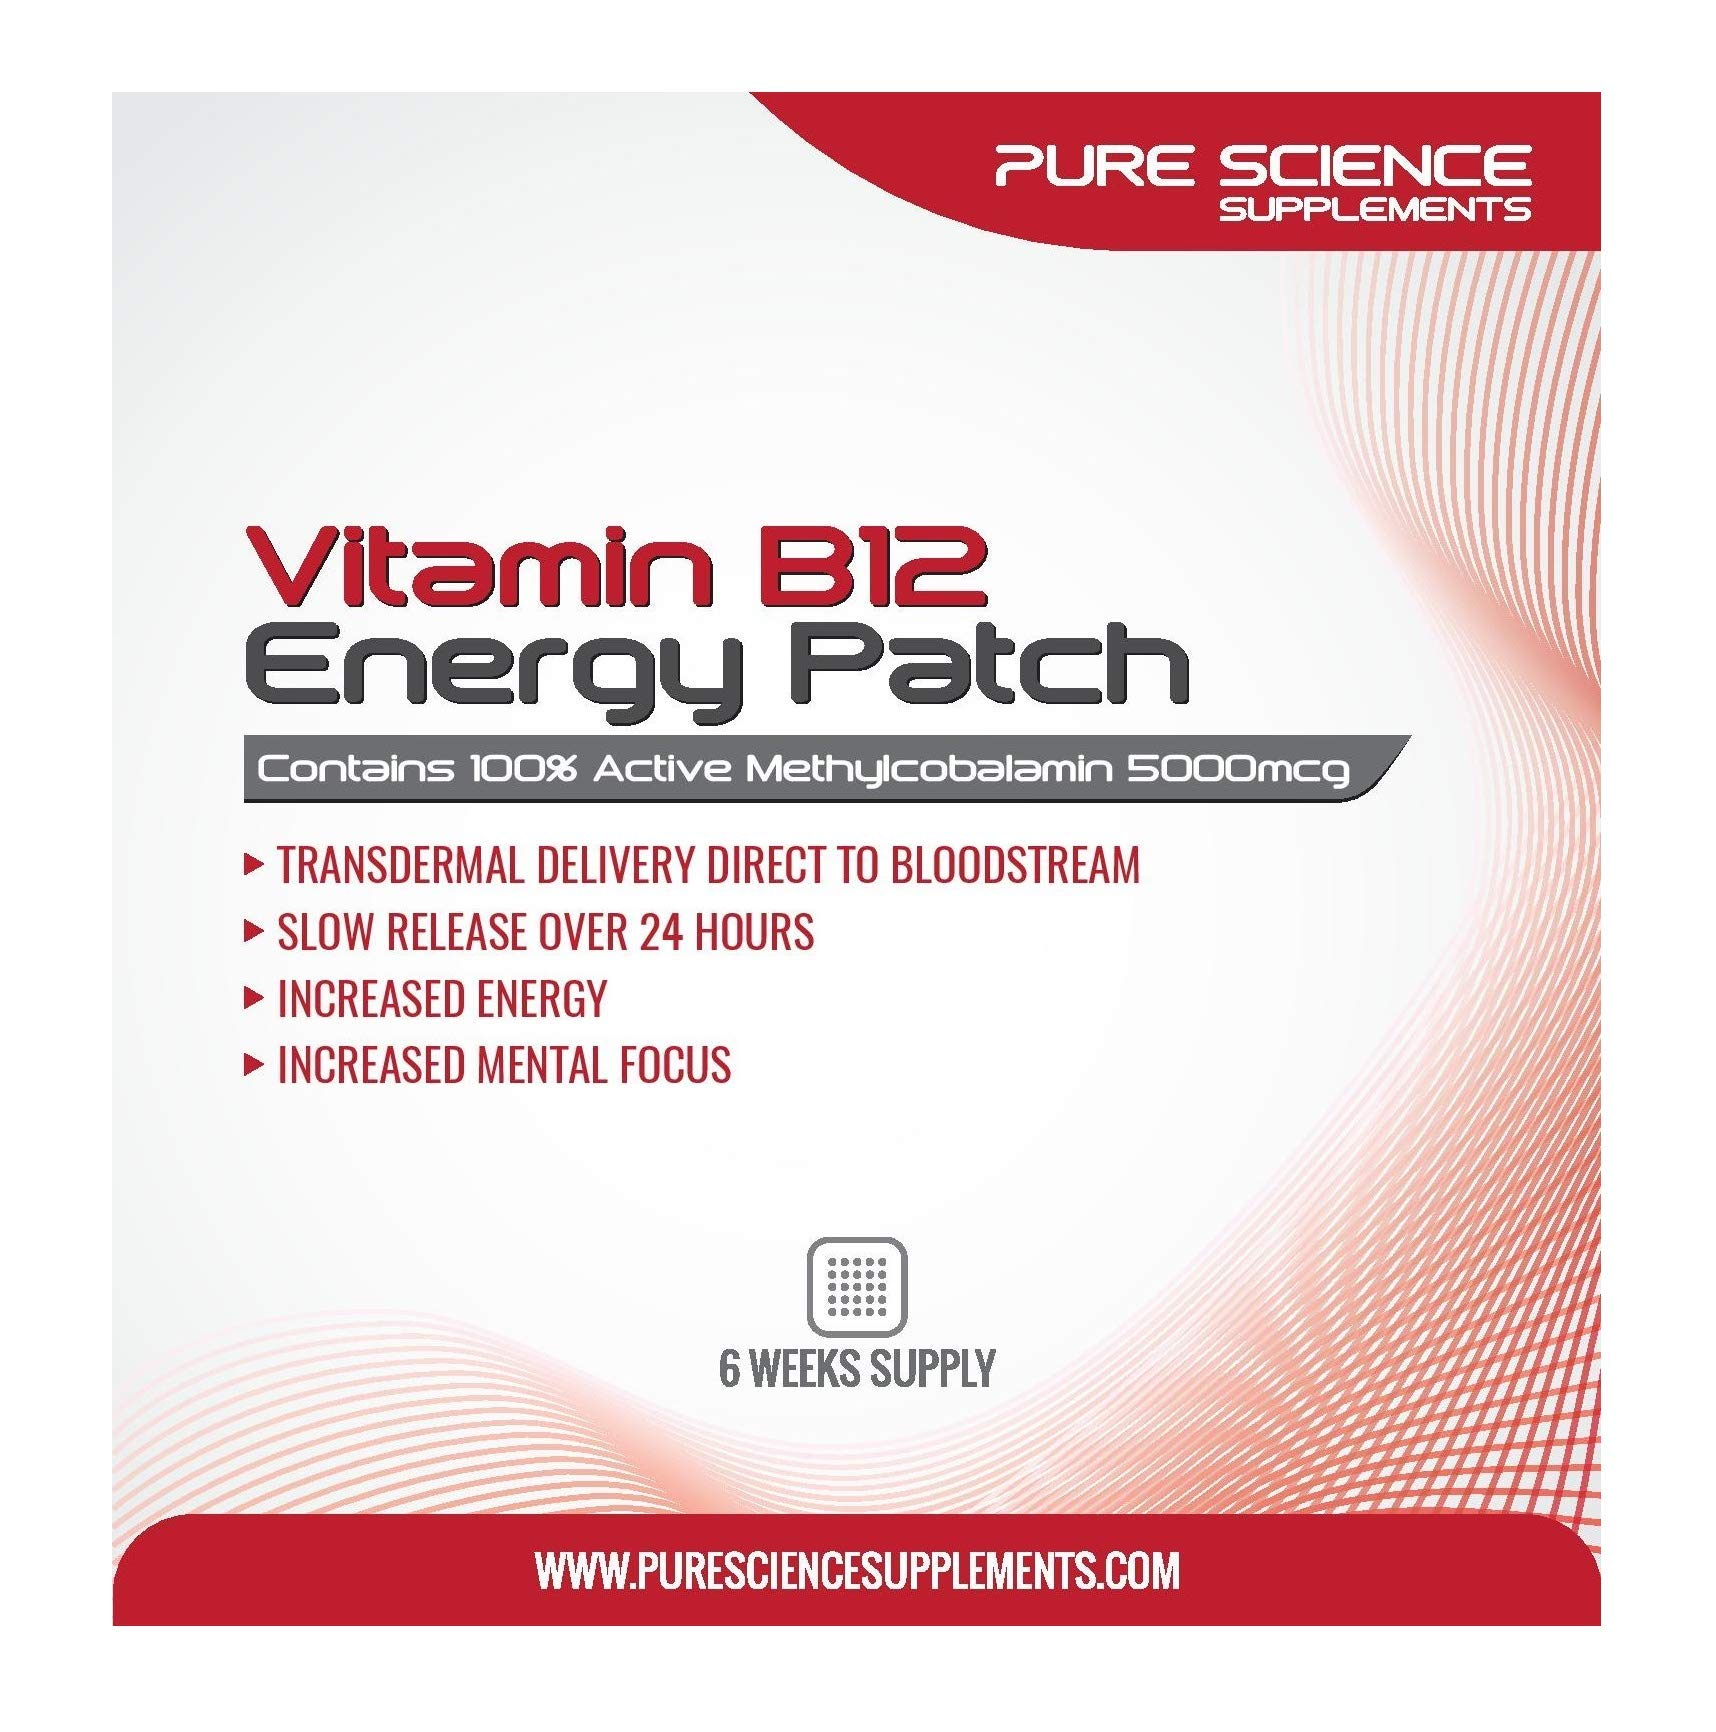 Pure Science Transdermal Vitamin B12 Patches 5000mcg - 6 Weeks Supply